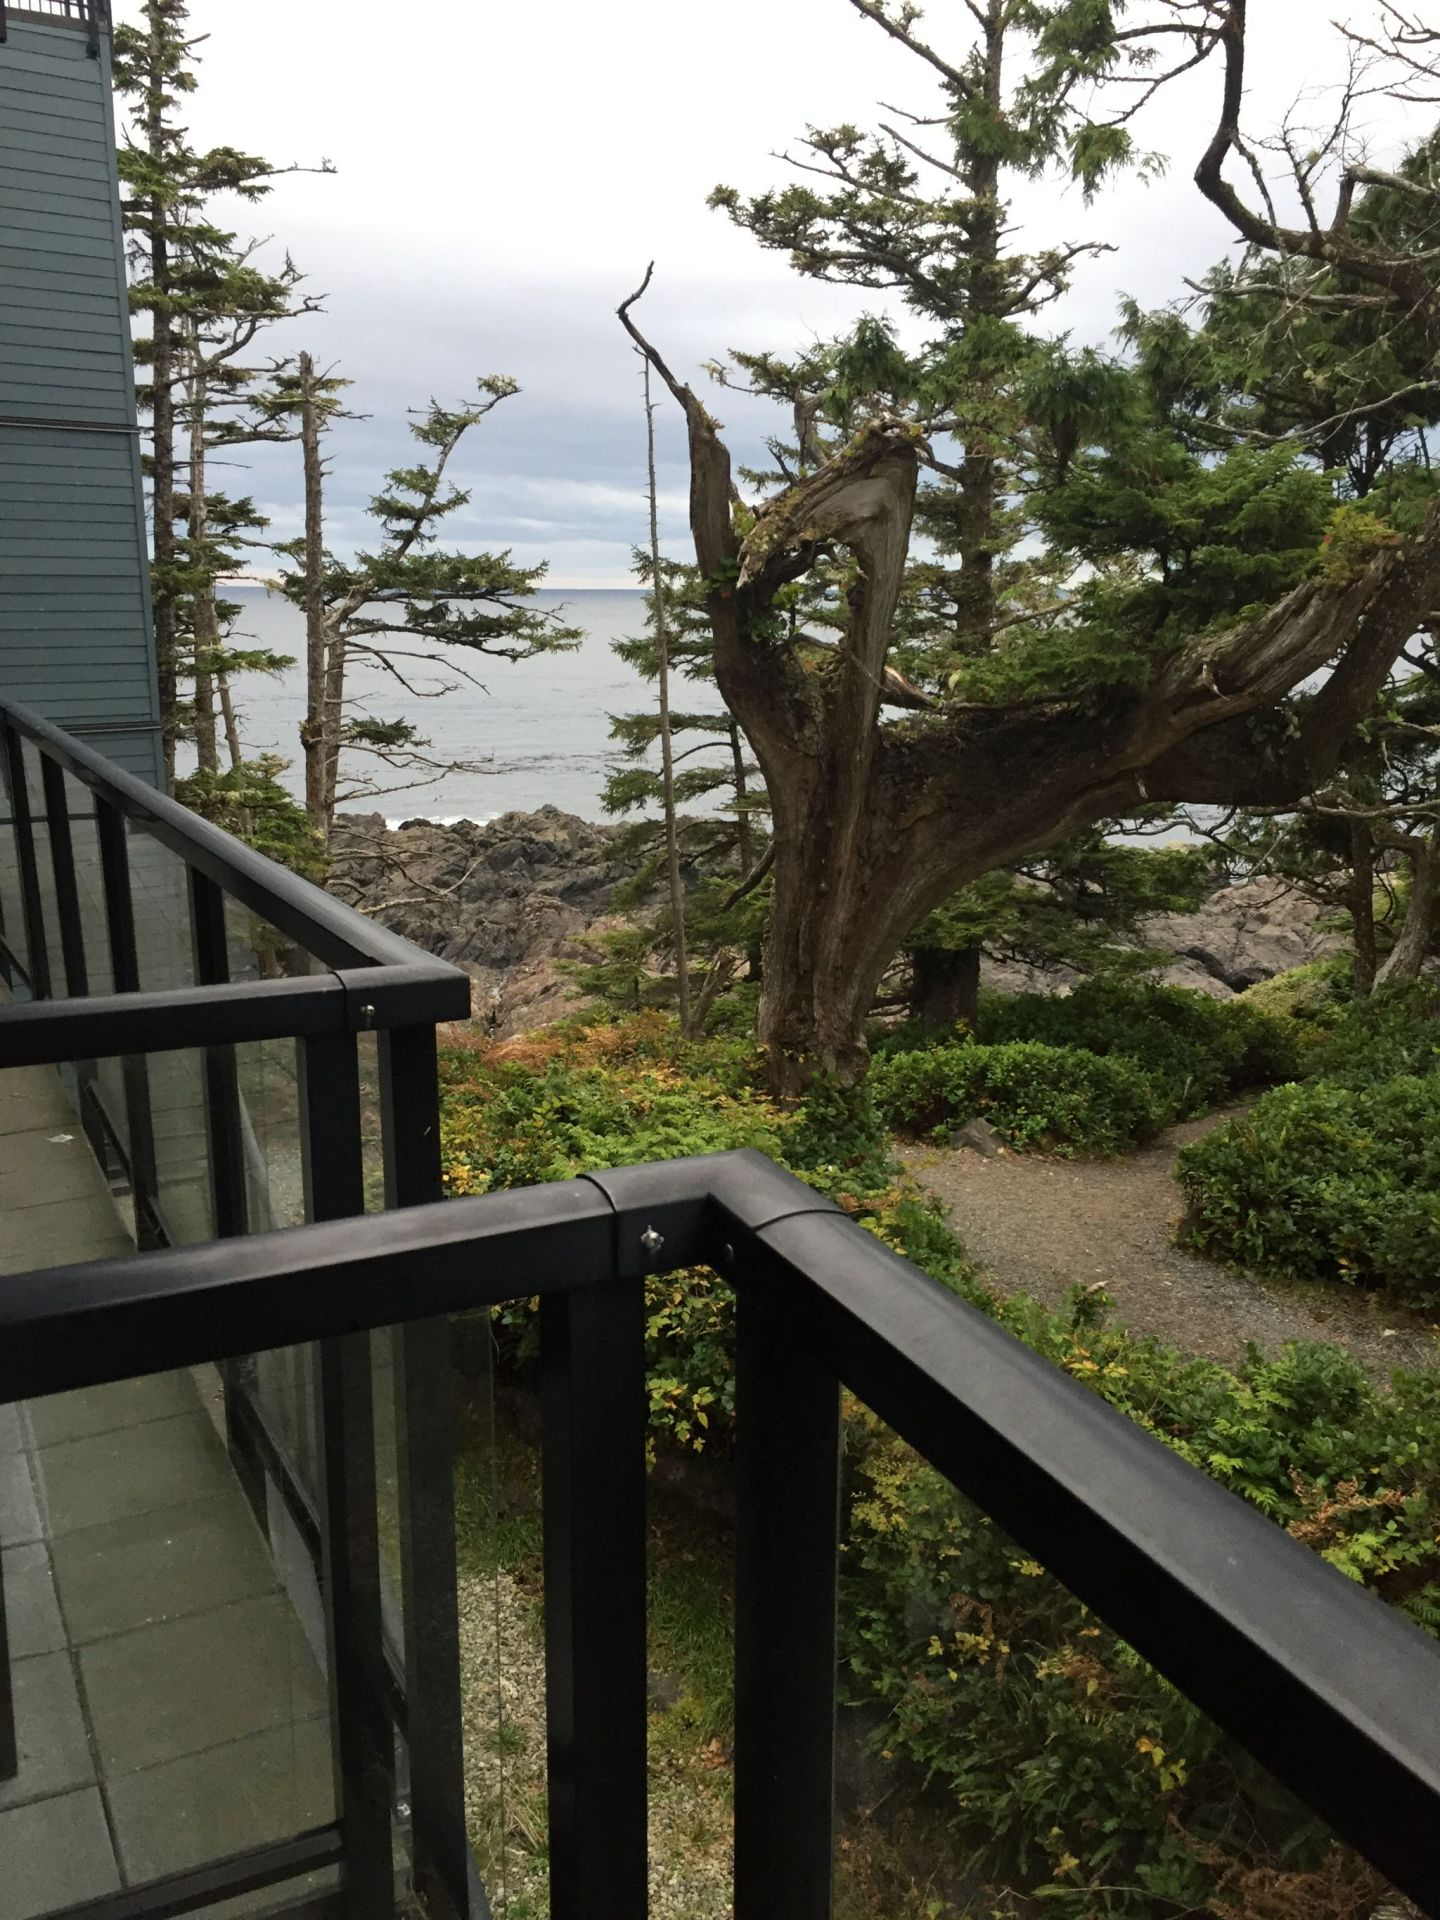 Balcony at Black Rock Oceanfront Resort in Ucluelet, Vancouver Island